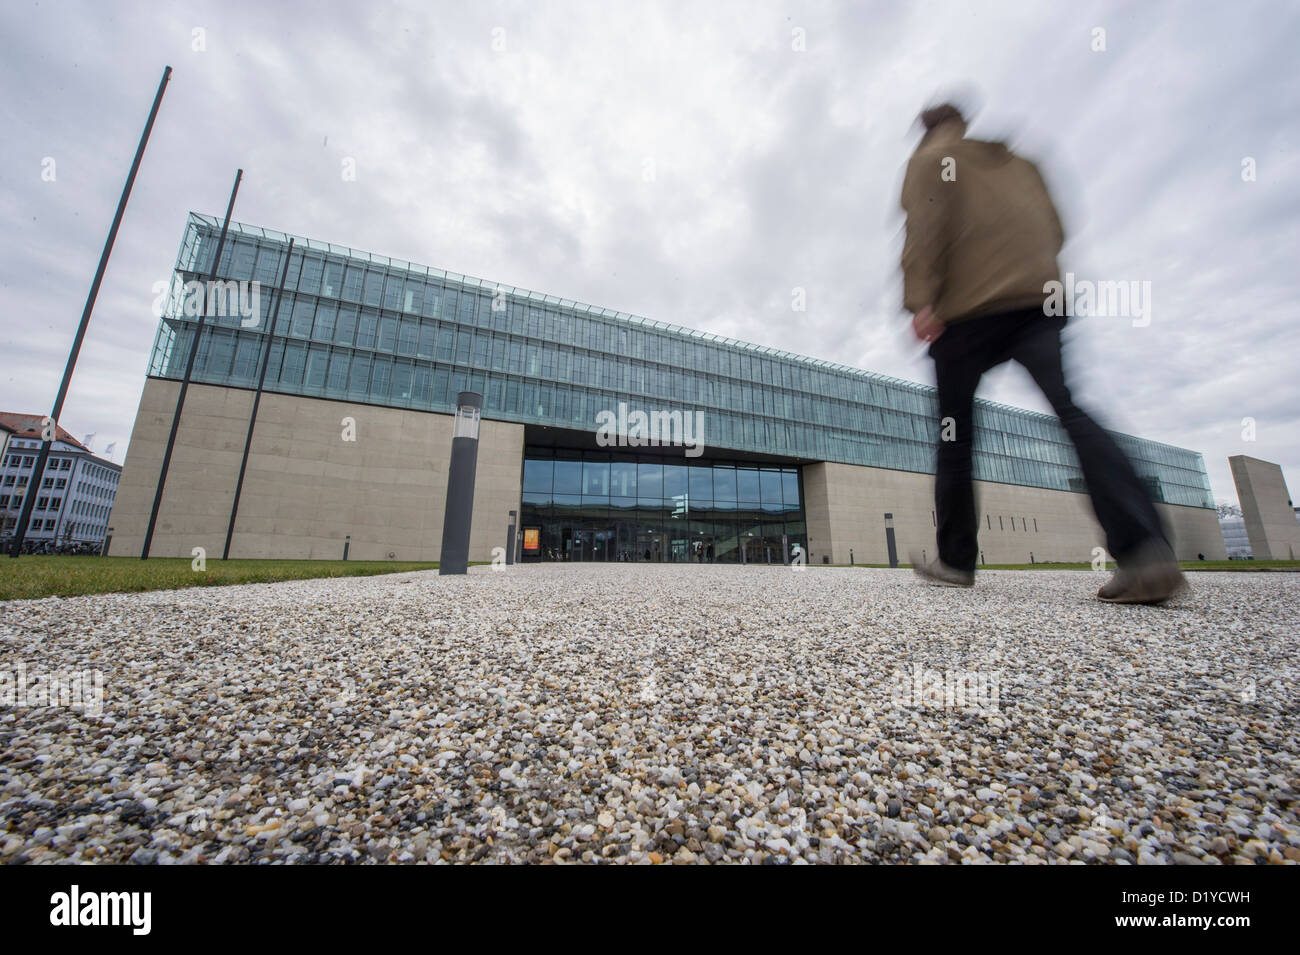 A man walks toward the State Museum of Egyptian Art in Munich, Germany, 08 January 2013. The musuem opens - Stock Image